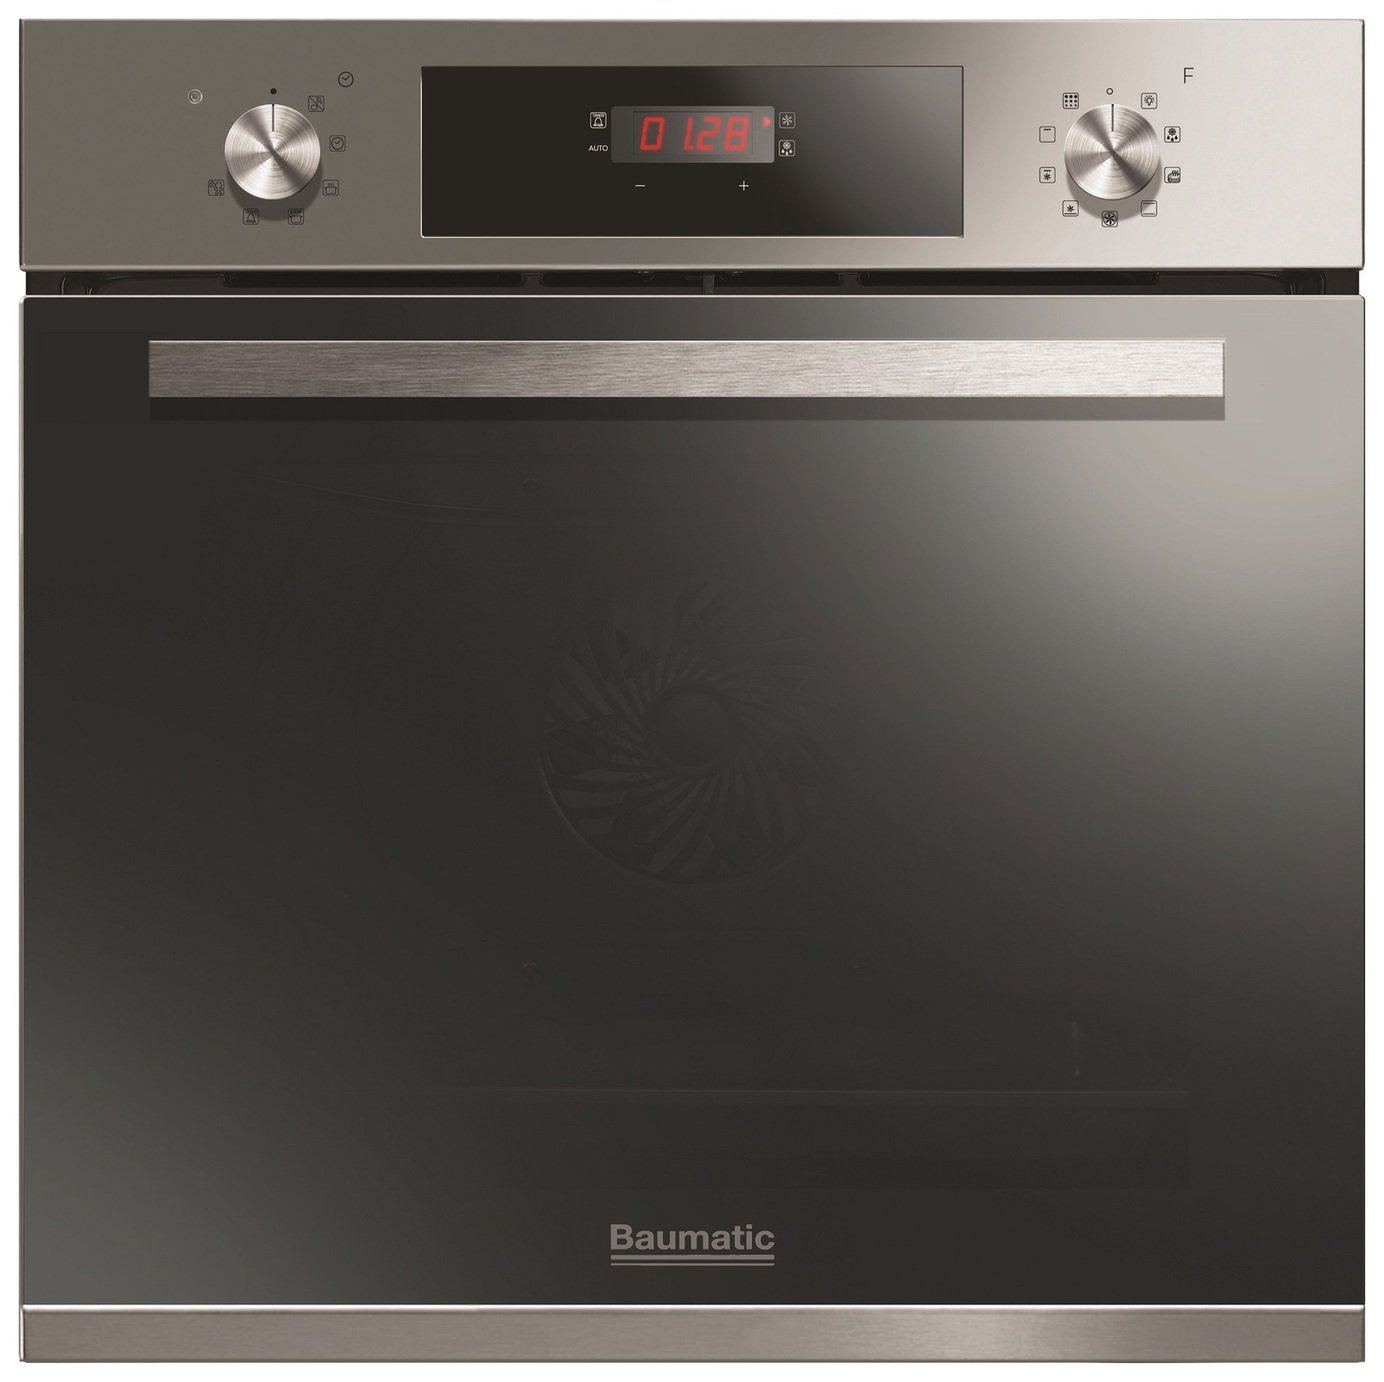 Image of Baumatic BOPT609X Pyrolytic Electric Oven - Stainless Steel